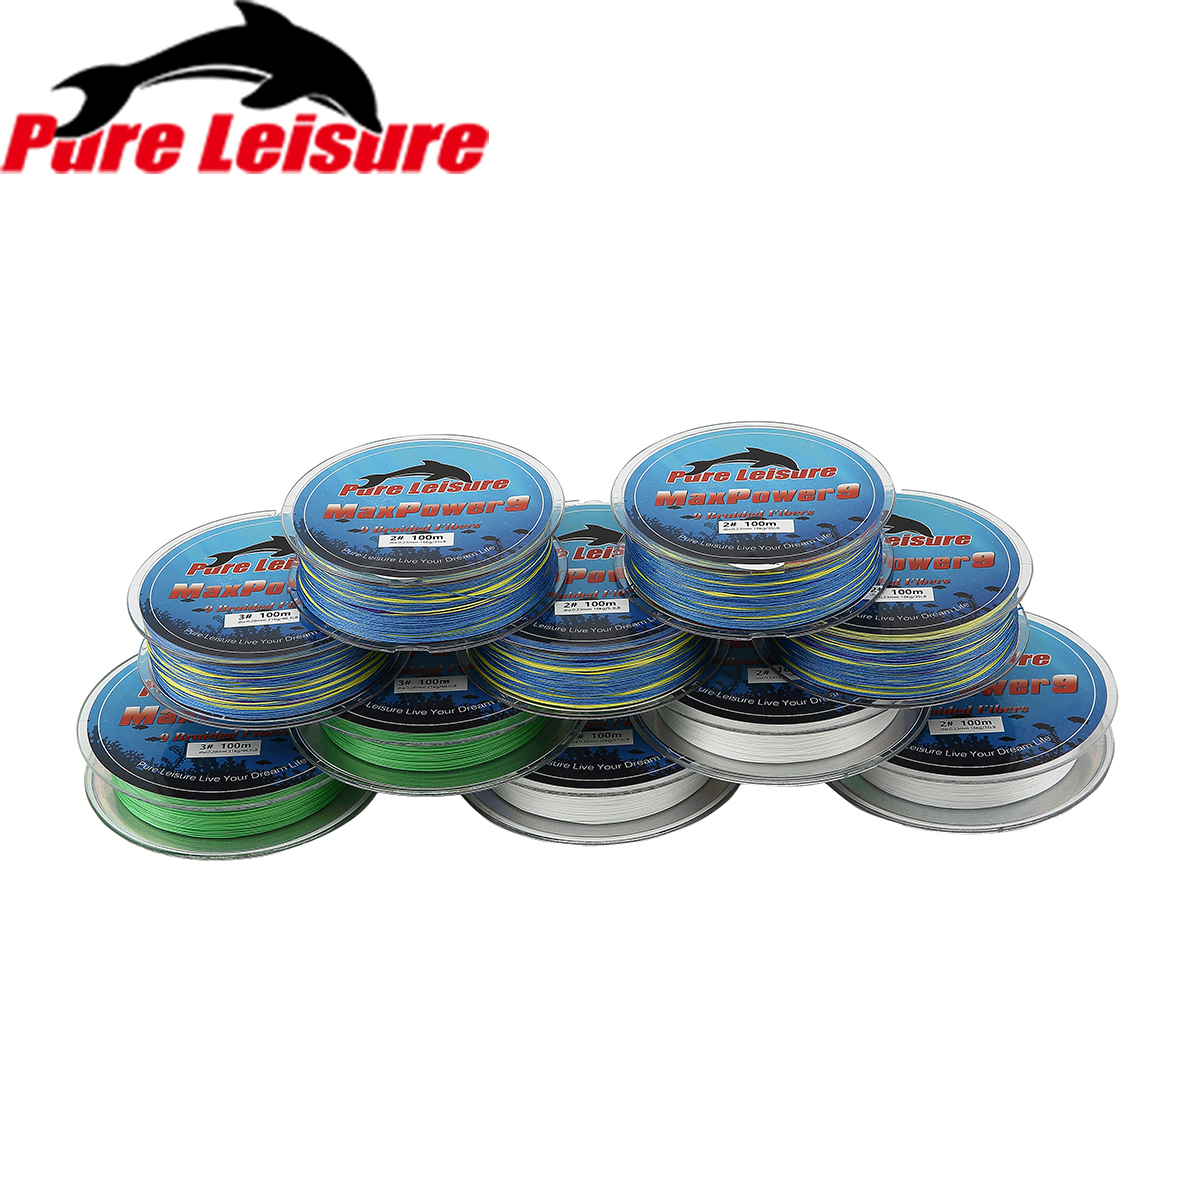 PureLeisure Braid Fishing 9 Stands 100M Multifilament PE Braided Fishing Line 100m X9 Tresse Peche for Carp Fishing Steel Wire